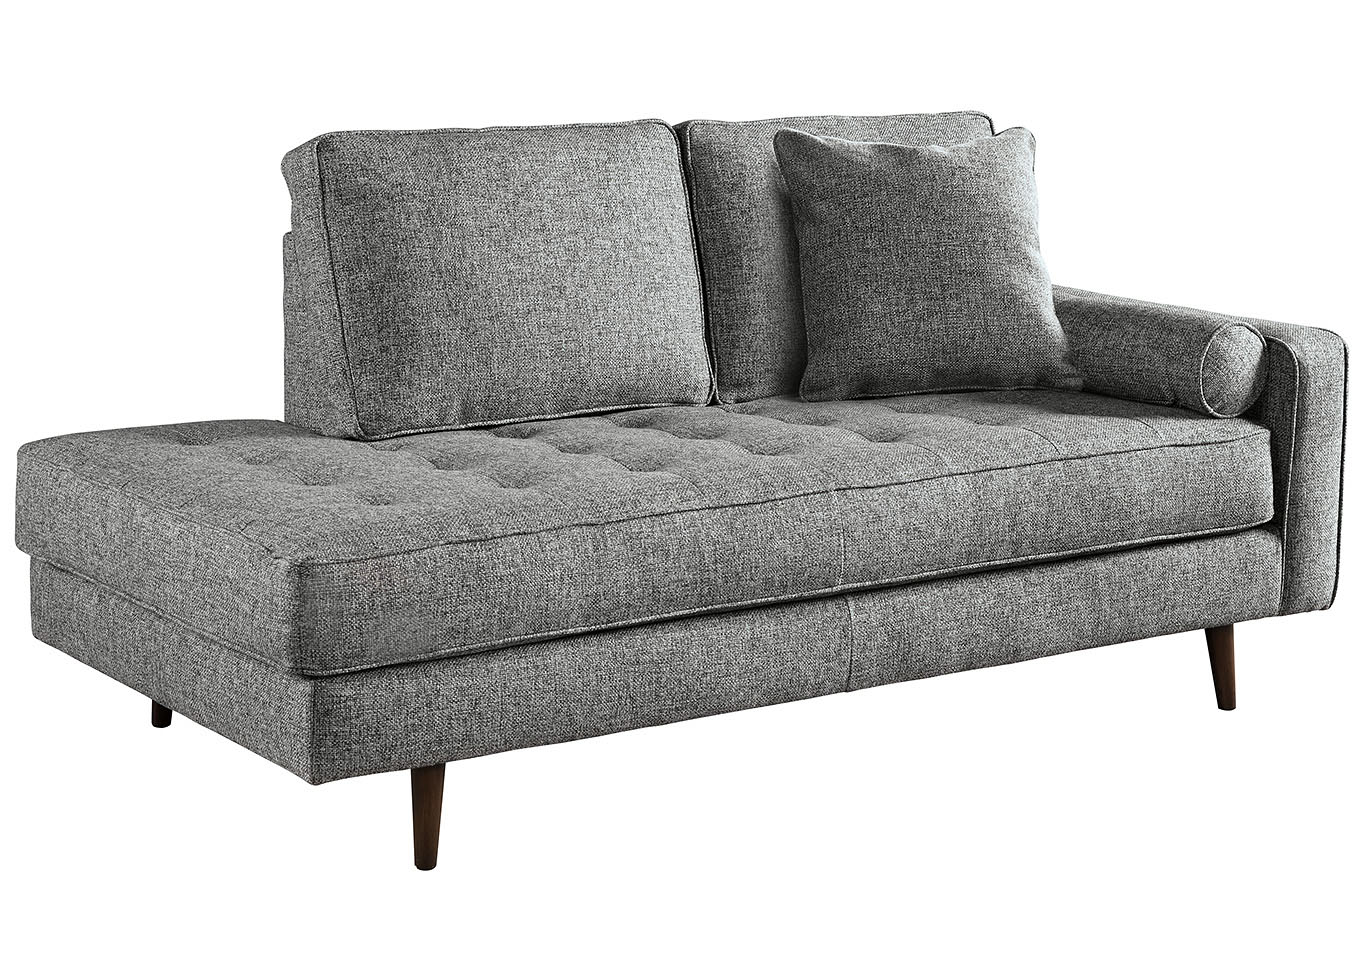 Woodstock Furniture Value Center Zardoni Charcoal Right Facing ... on chaise furniture, chaise sofa sleeper, chaise recliner chair,